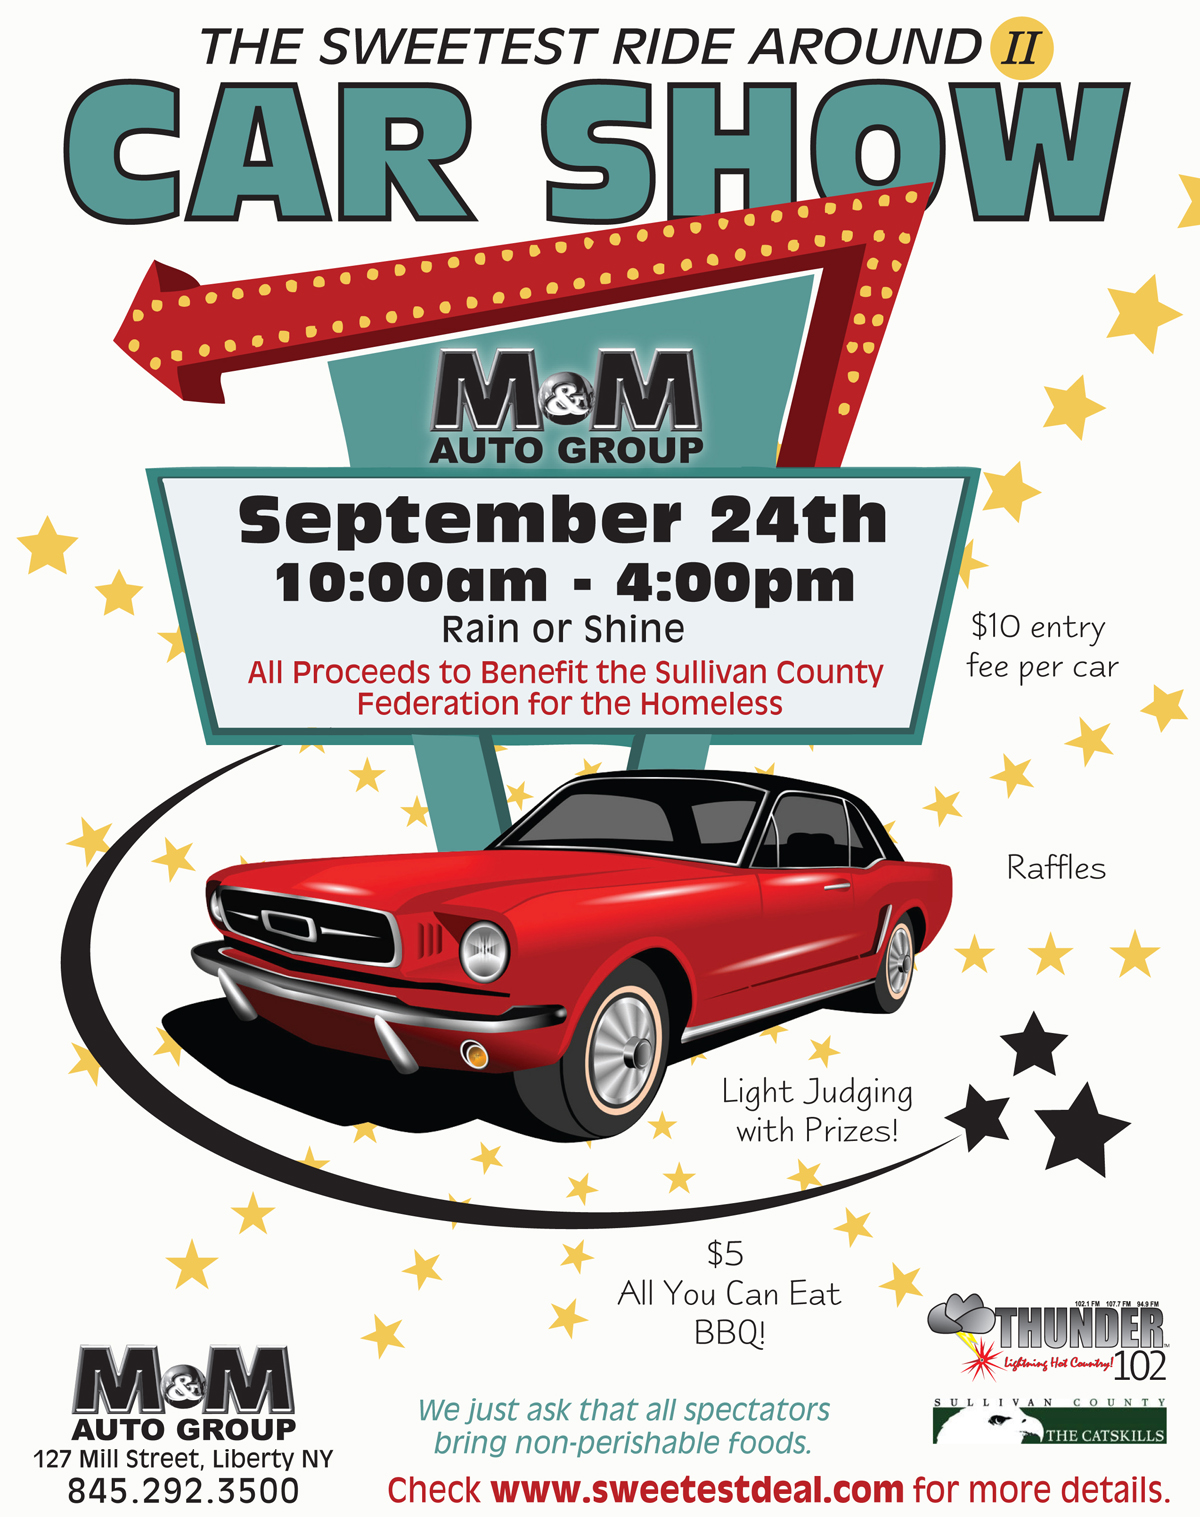 free car show flyer template   Manqal.hellenes.co